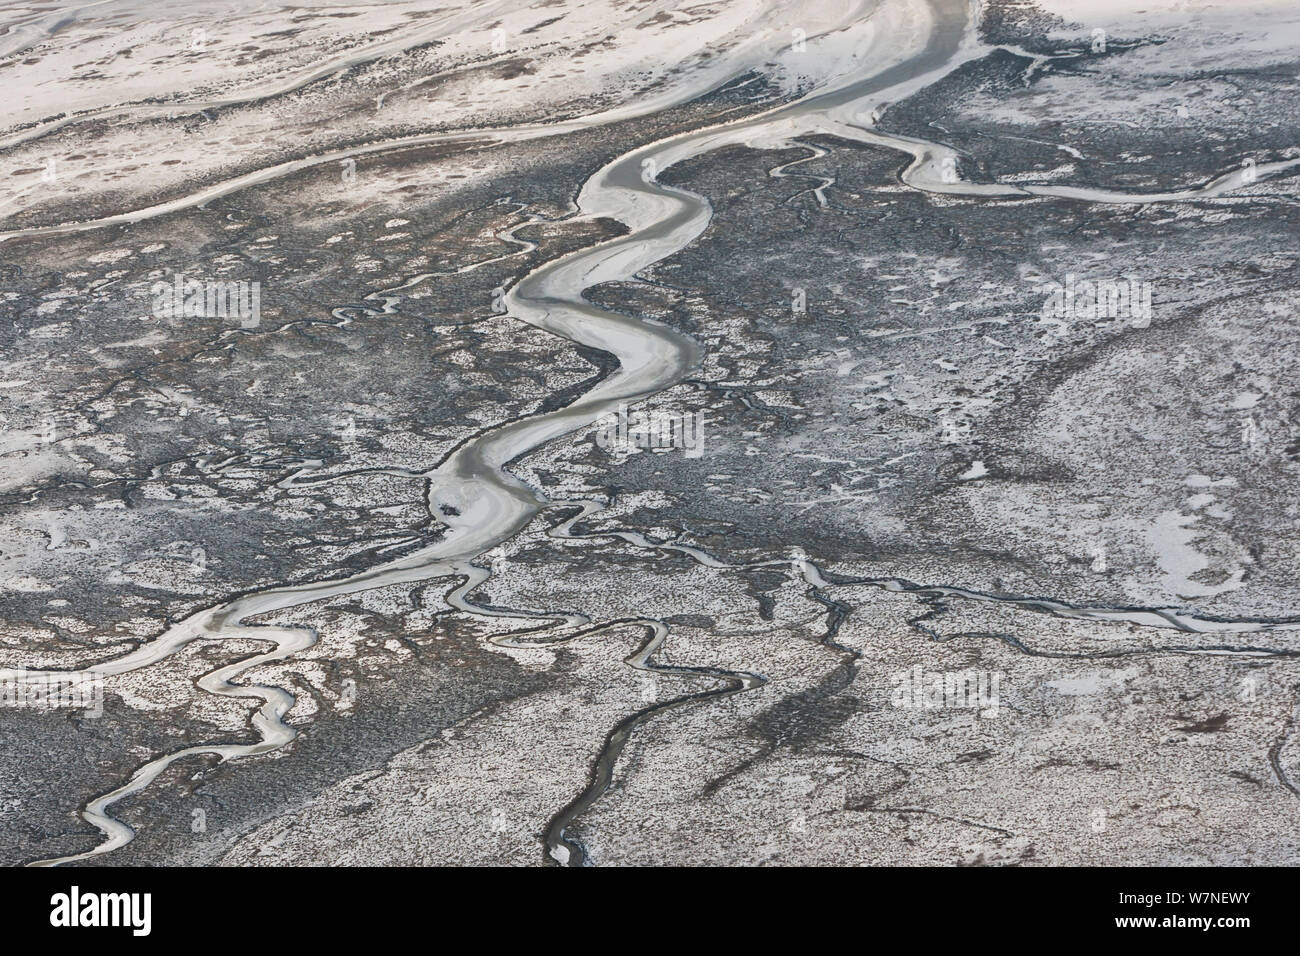 Aerial view of tidal creeks in saltmarshes on Memmert Island, in winter with snow, Ranzelwatt National Park near Borkum, Wadden Sea of Lower Saxony, East Frisia, Lower Saxony, Germany February 2012 Stock Photo